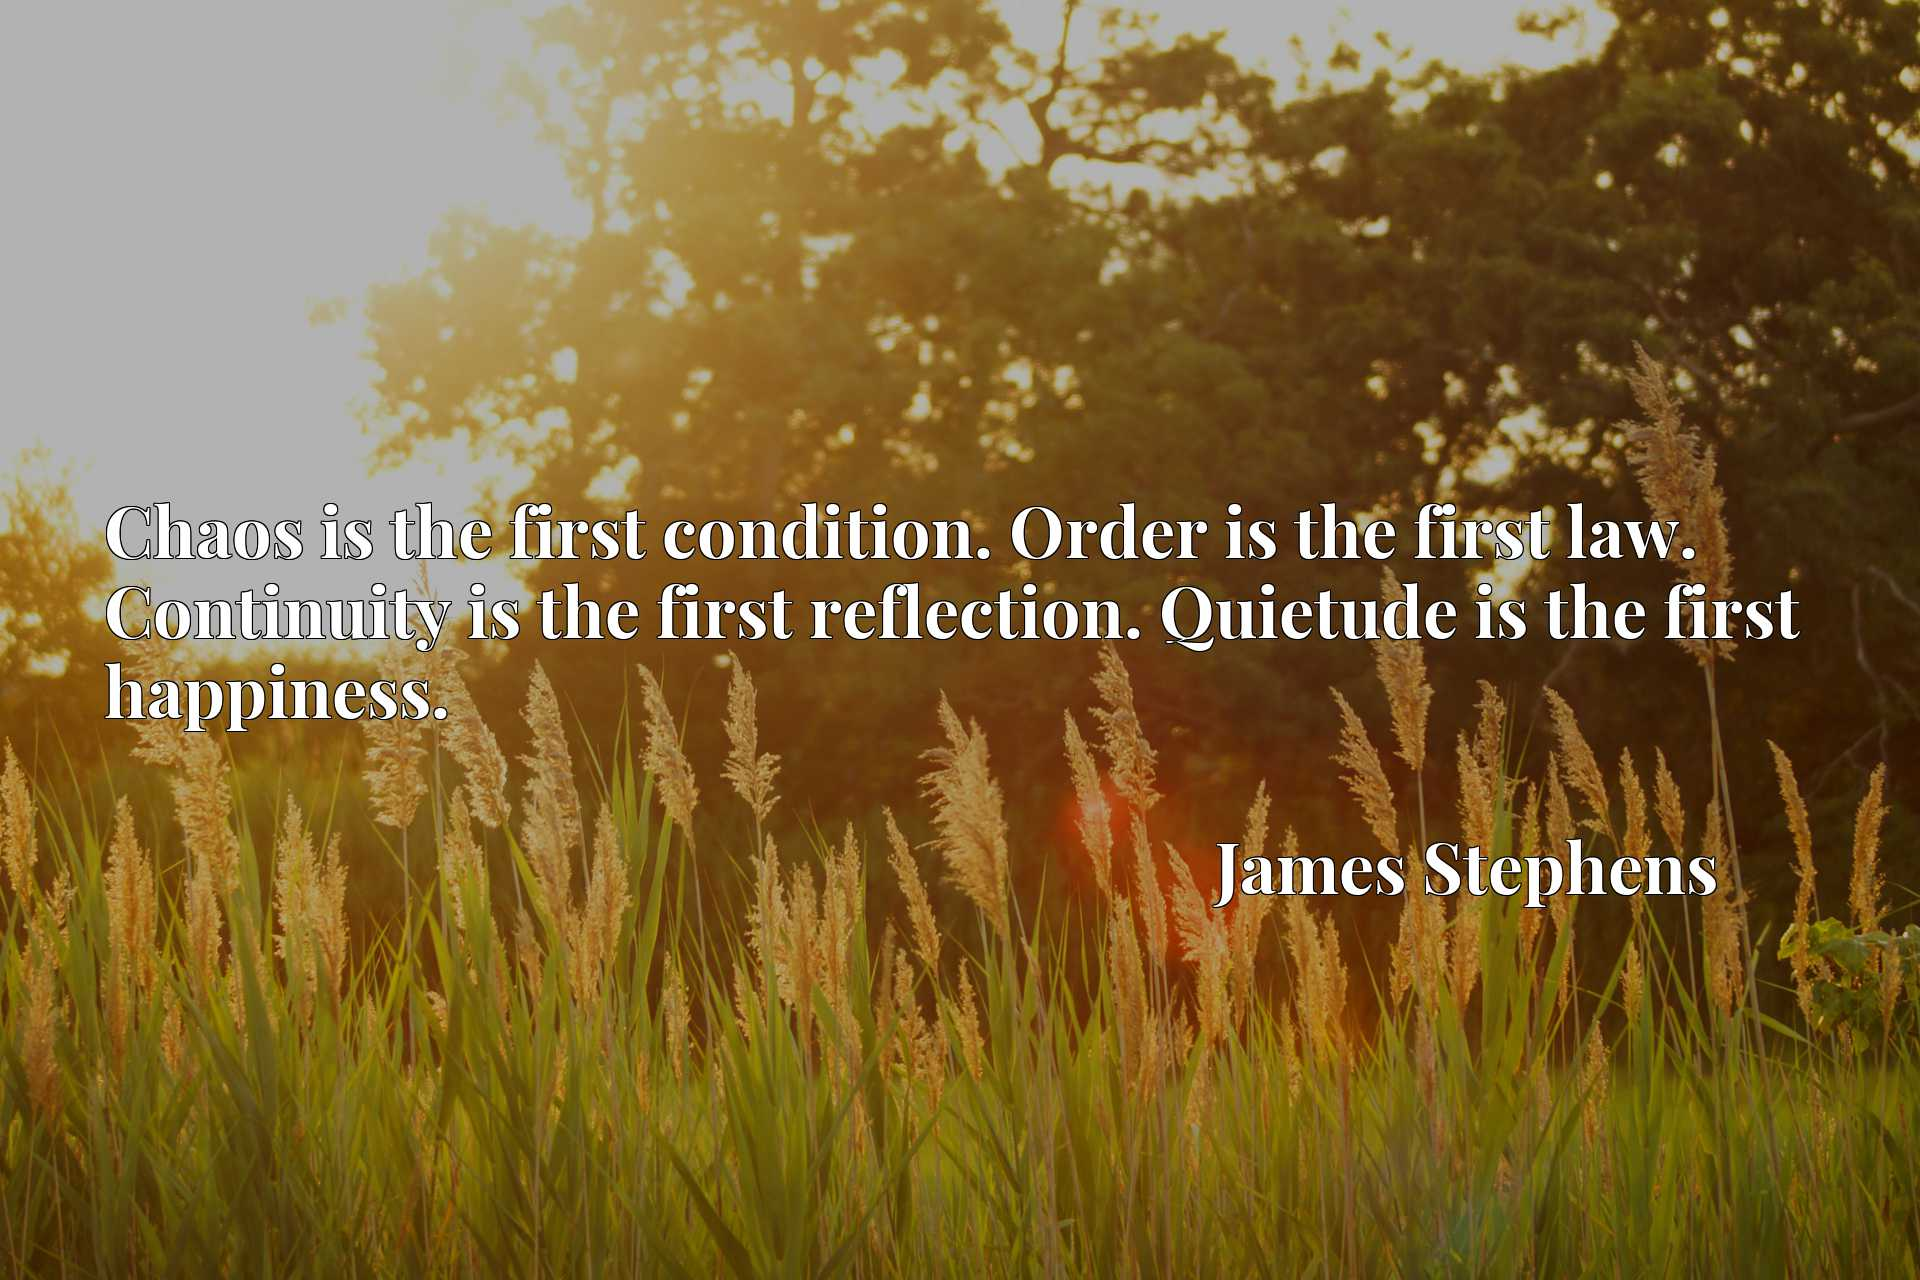 Chaos is the first condition. Order is the first law. Continuity is the first reflection. Quietude is the first happiness.